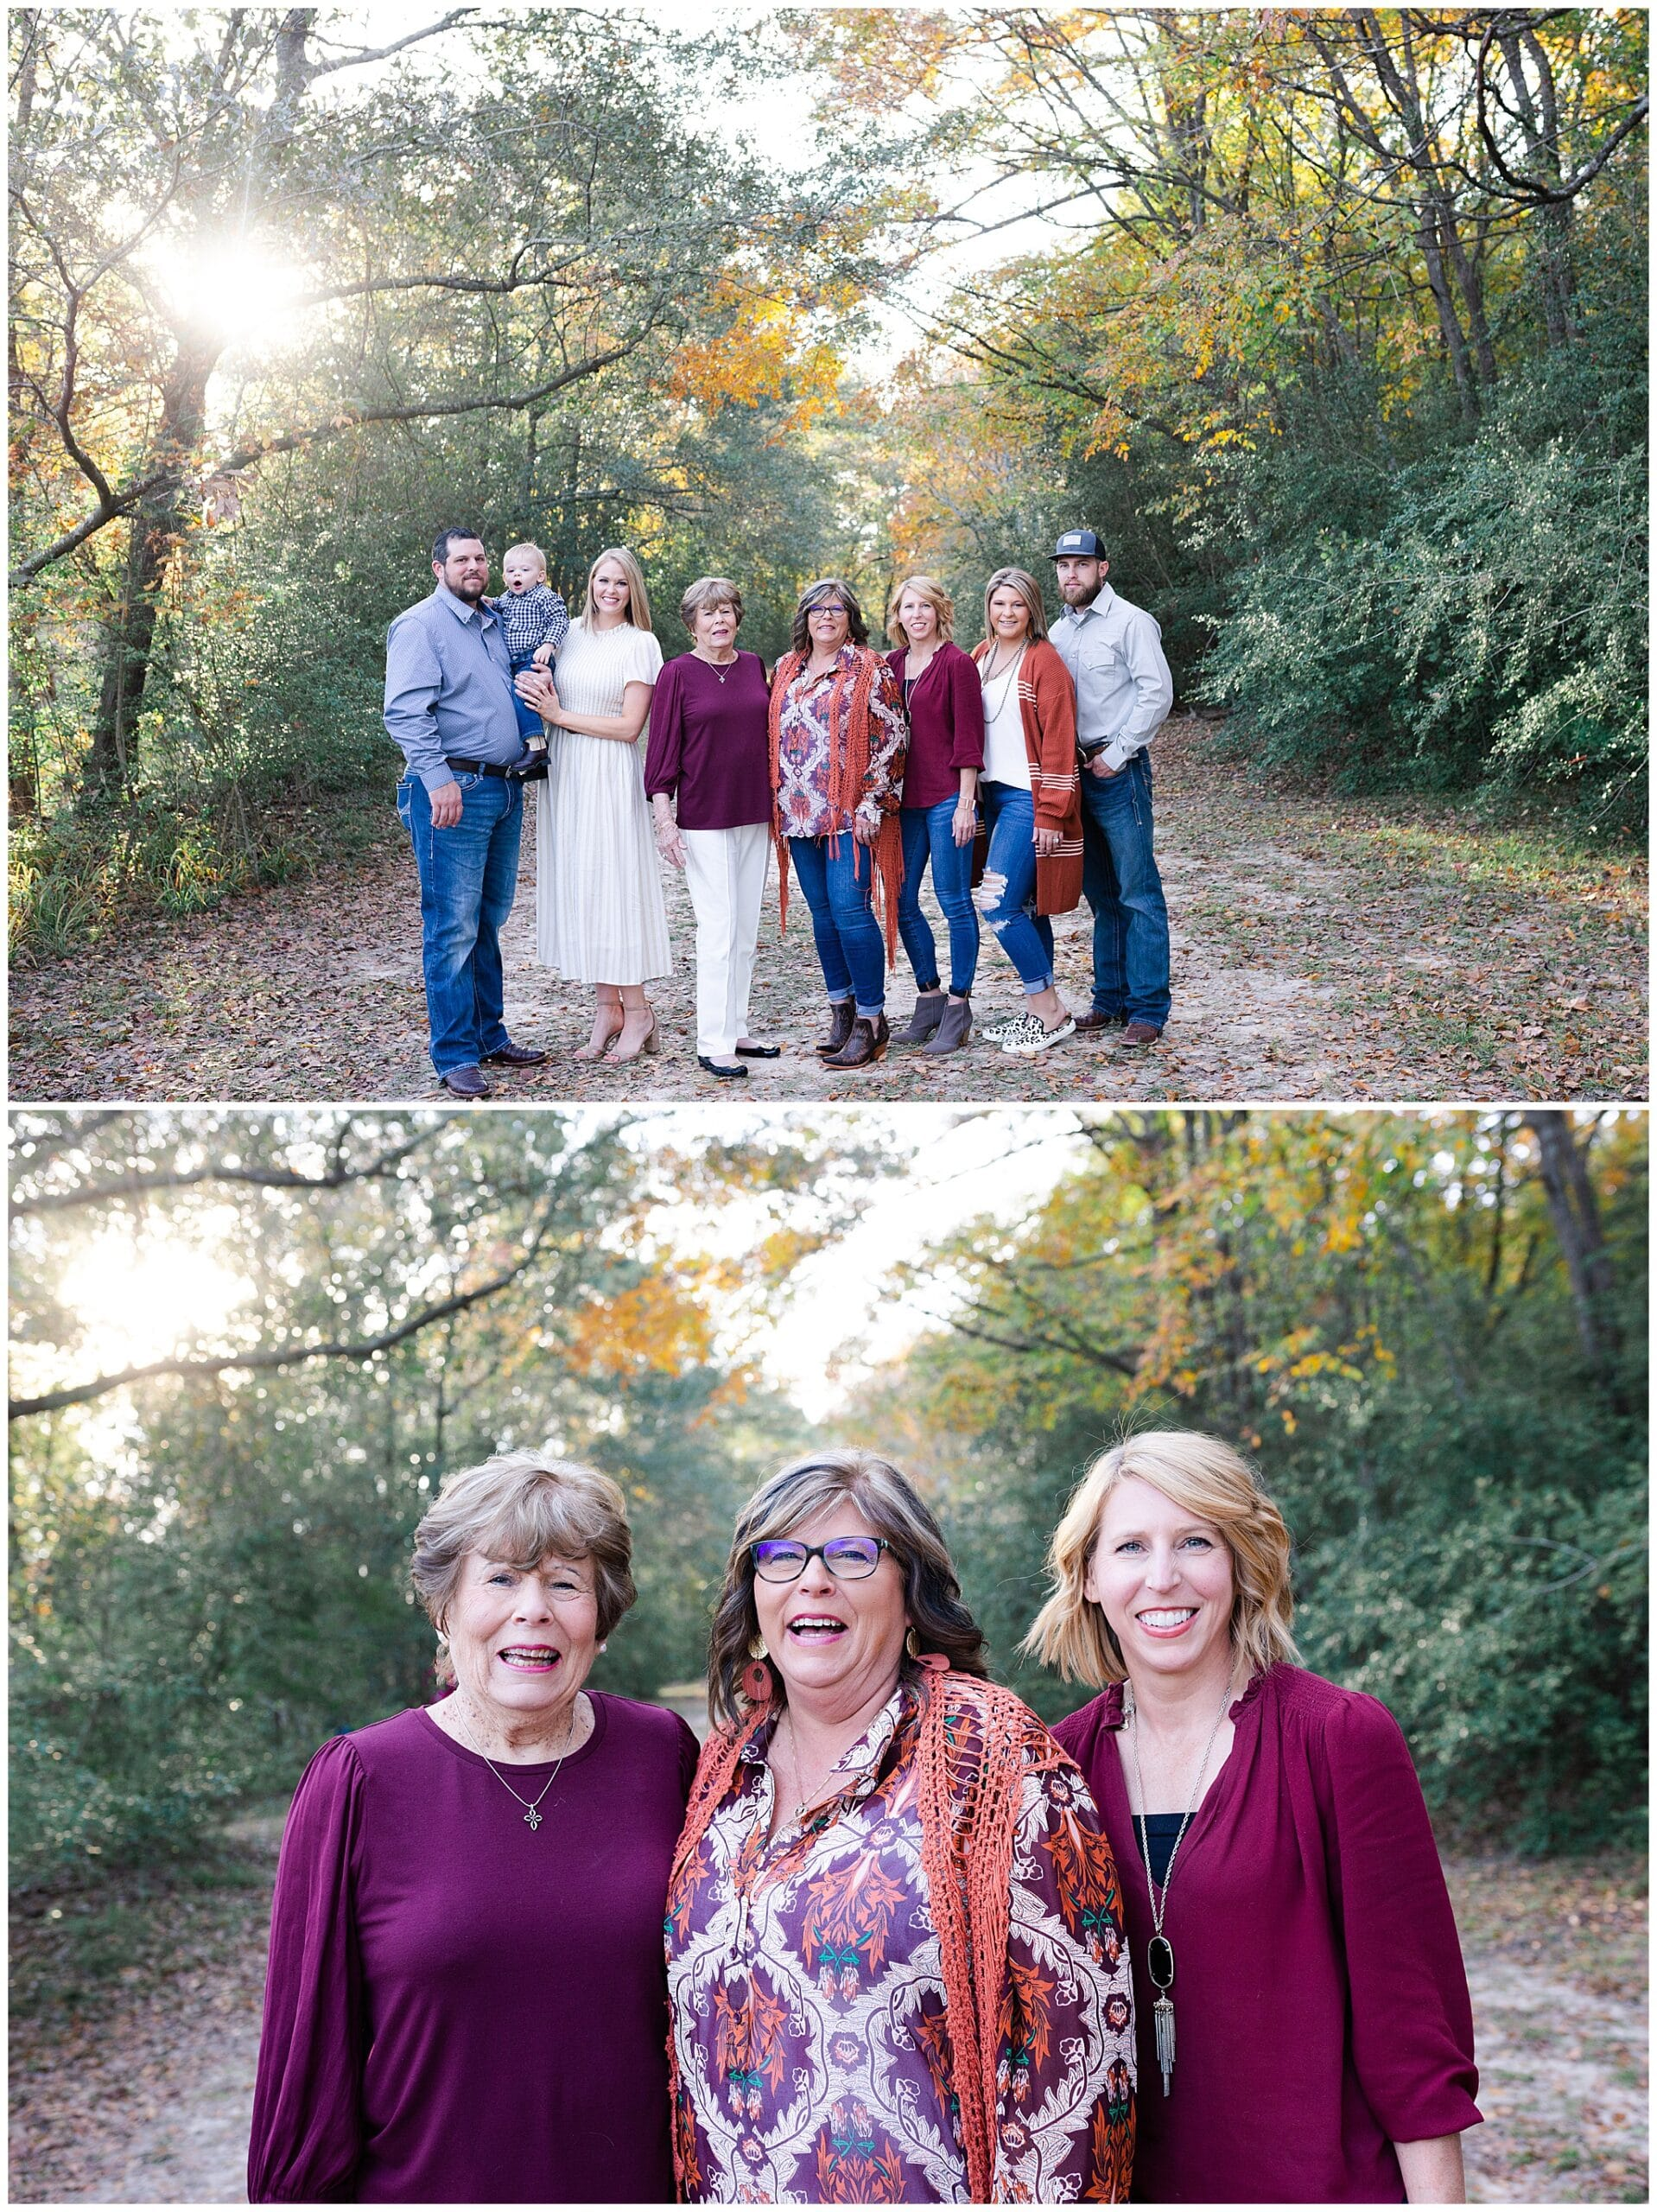 mother, grandmother and children getting portraits taken at Kickerillo-Mischer Preserve by Swish and Click Photography